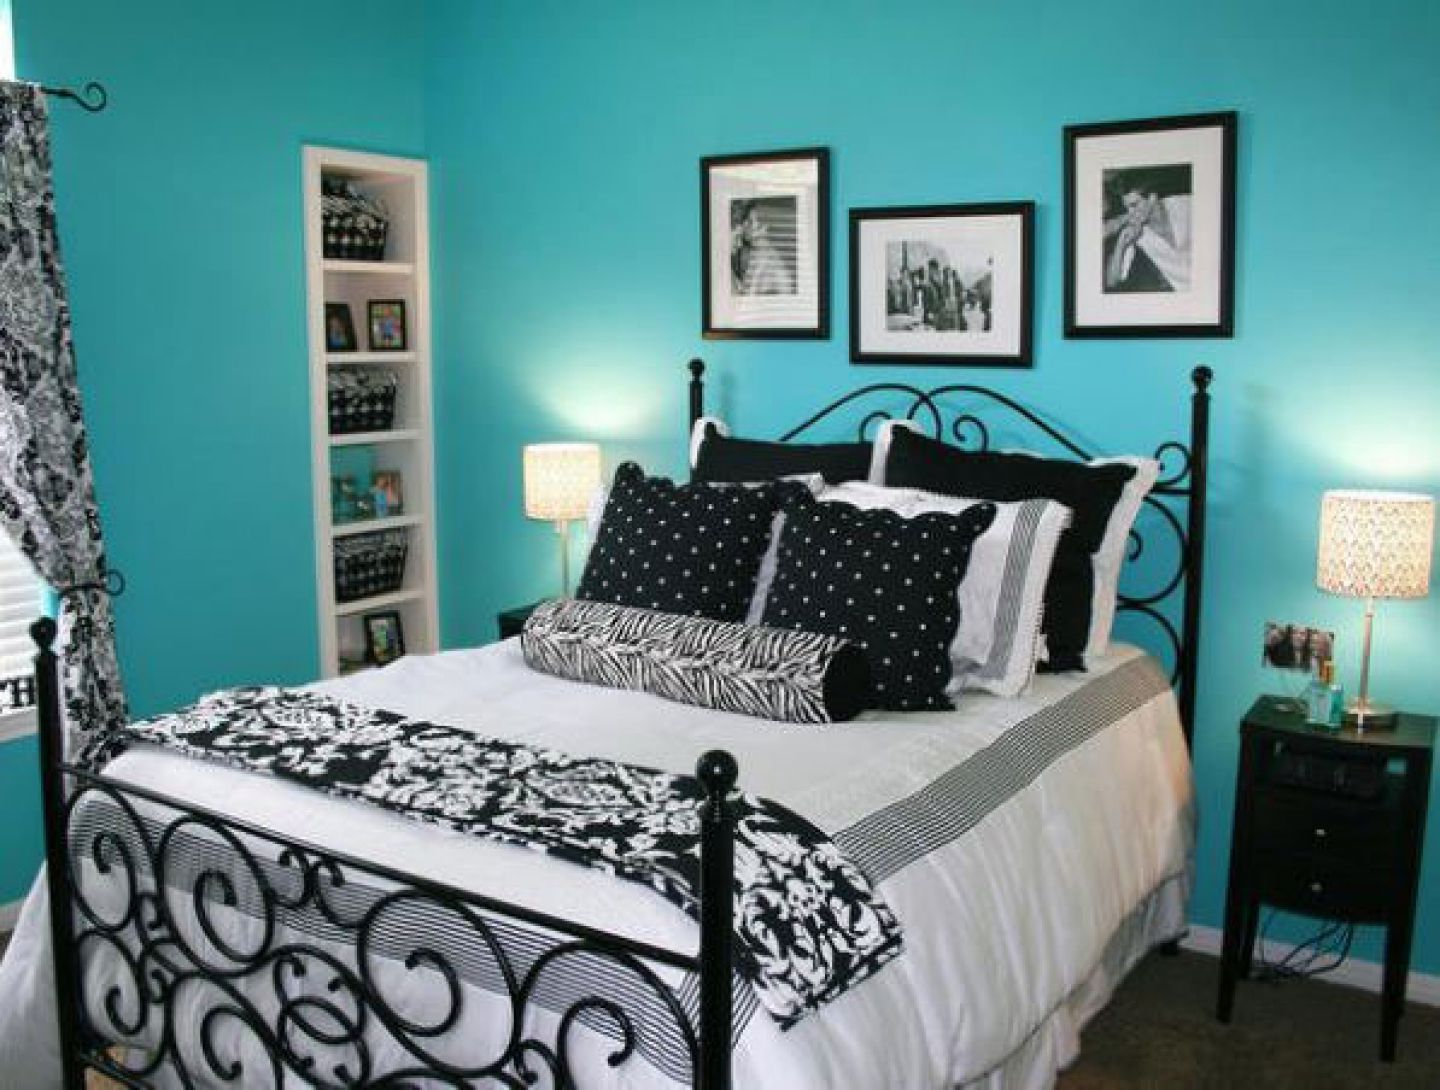 83 best teen room inspiration images on pinterest | paint colors